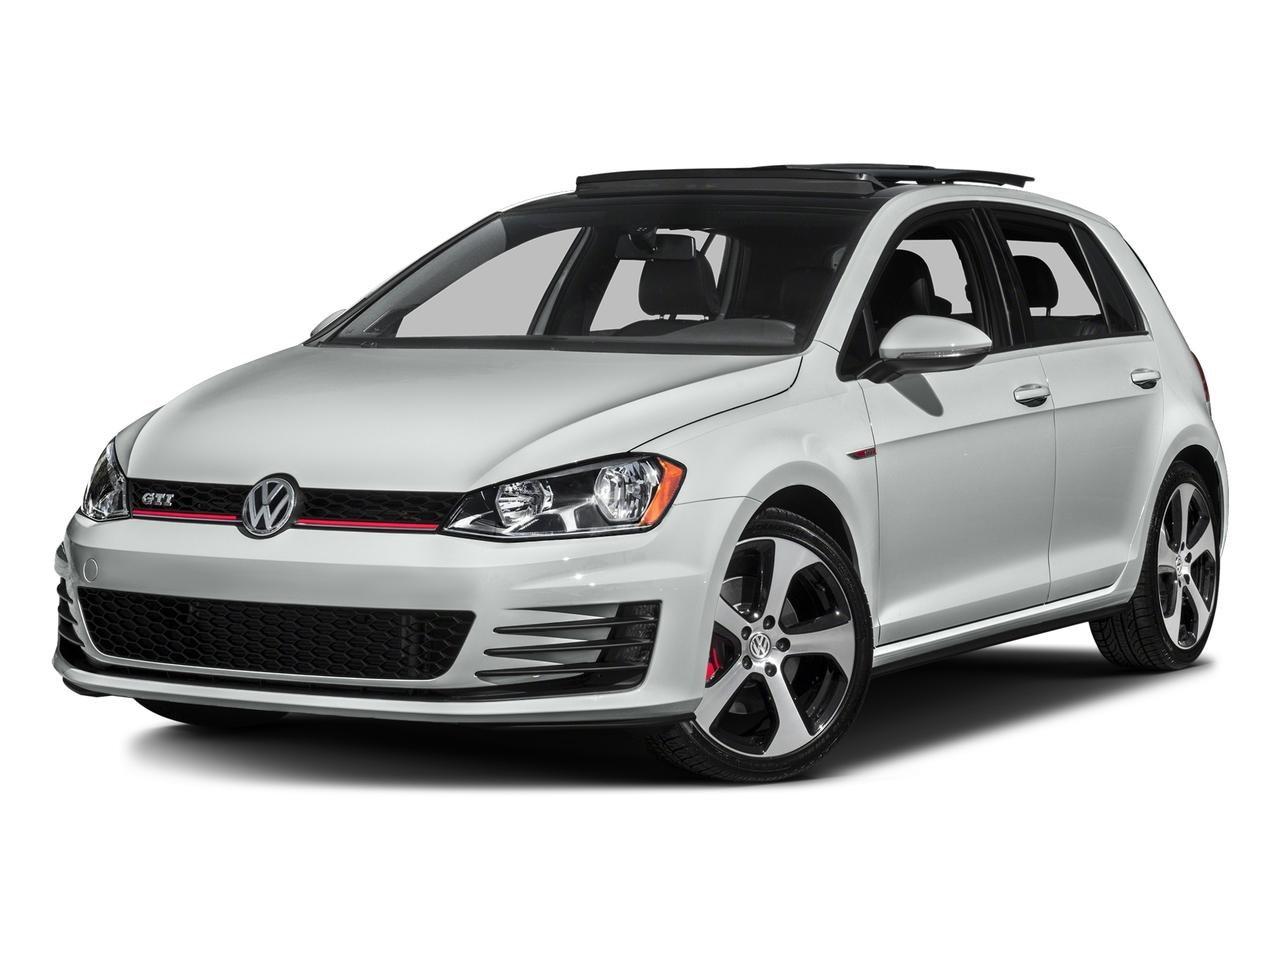 2017 Volkswagen Golf GTI Vehicle Photo in Manassas, VA 20109